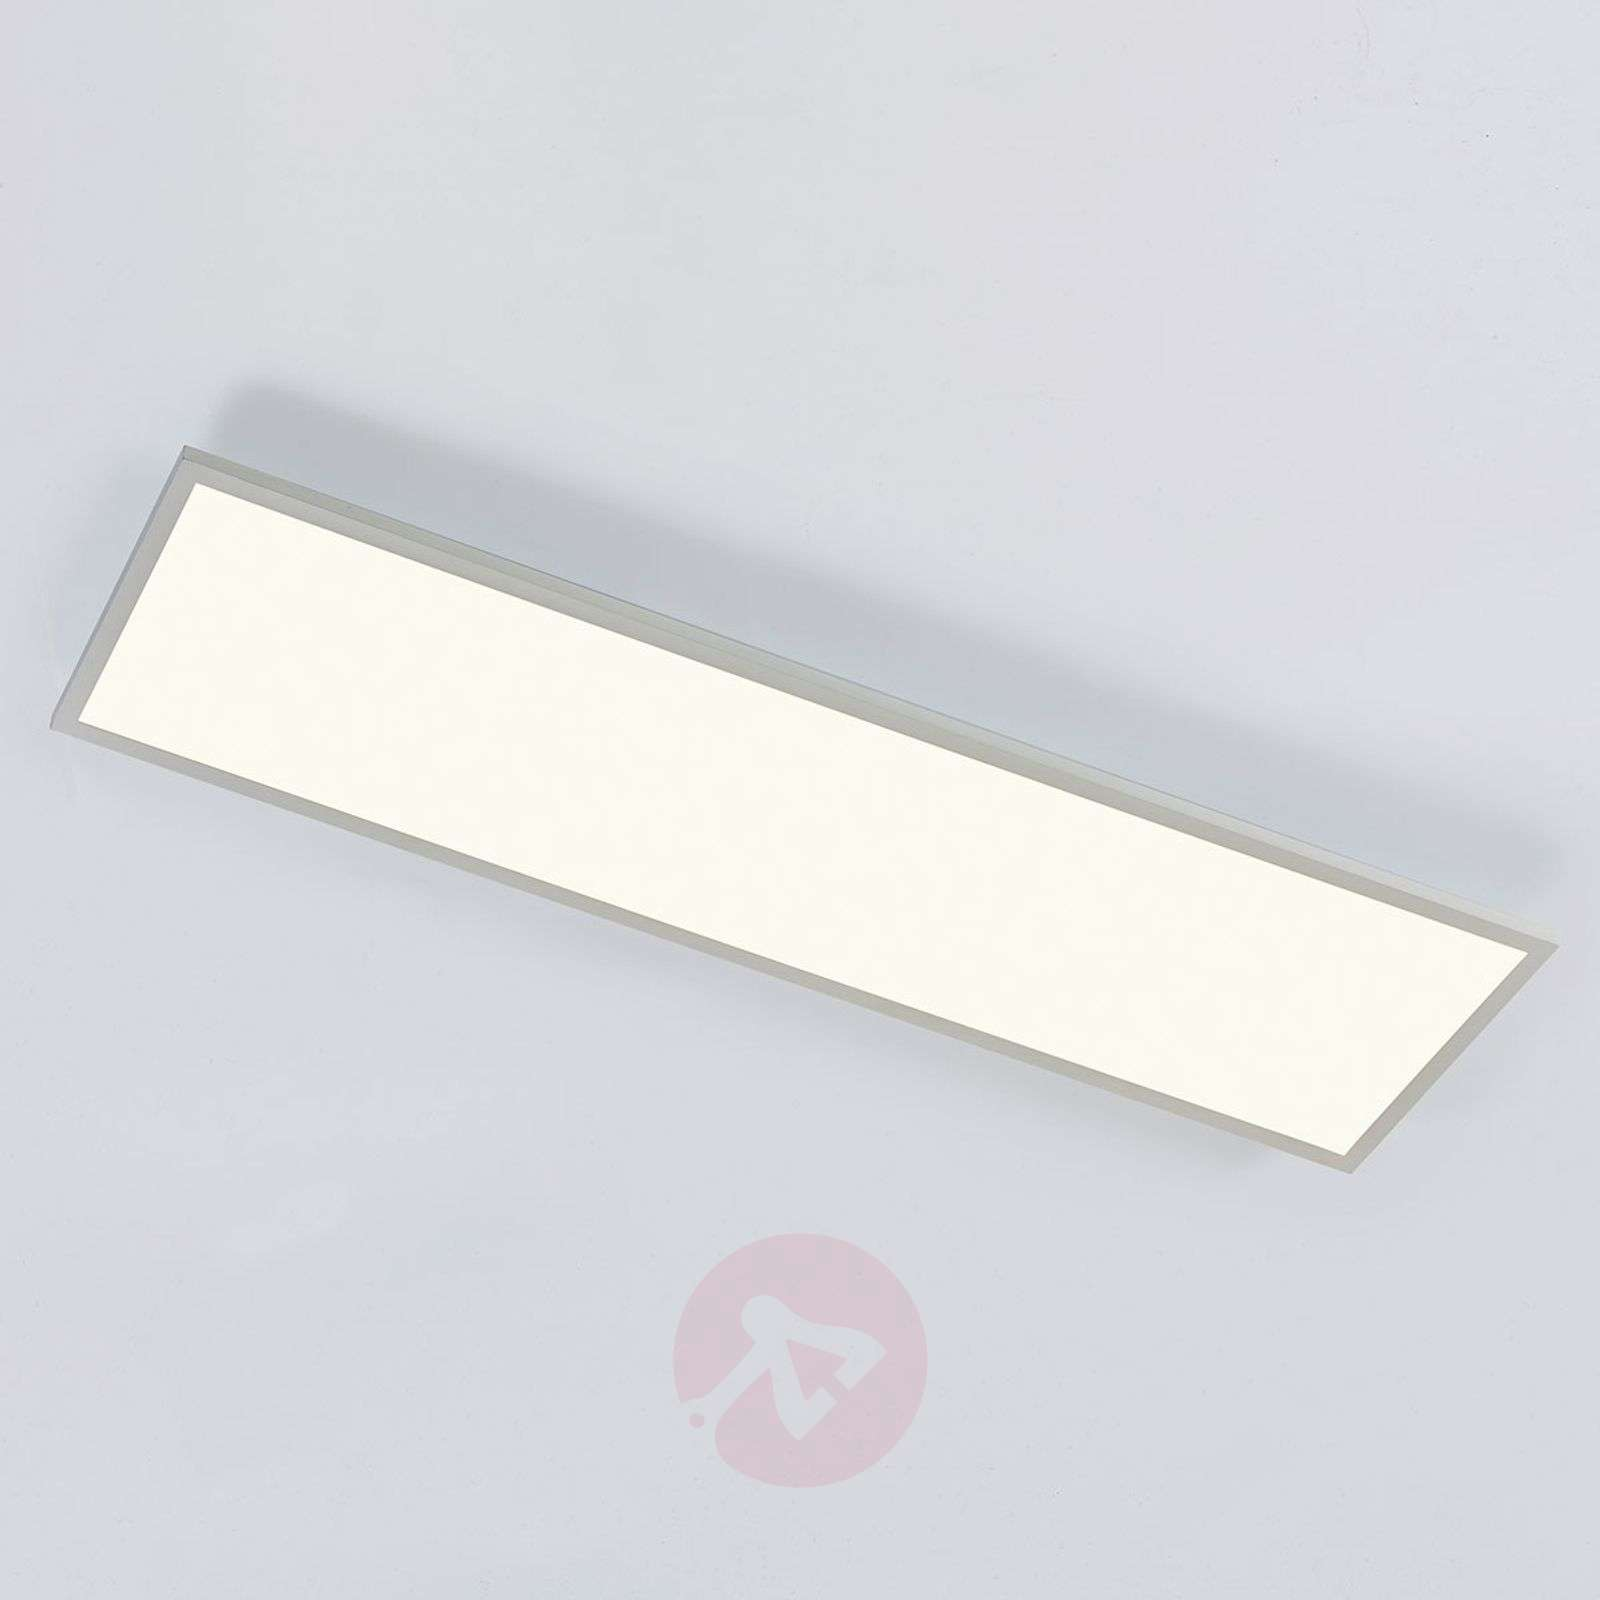 Powerful LED panel Philia, var. luminous colour-9621216-02